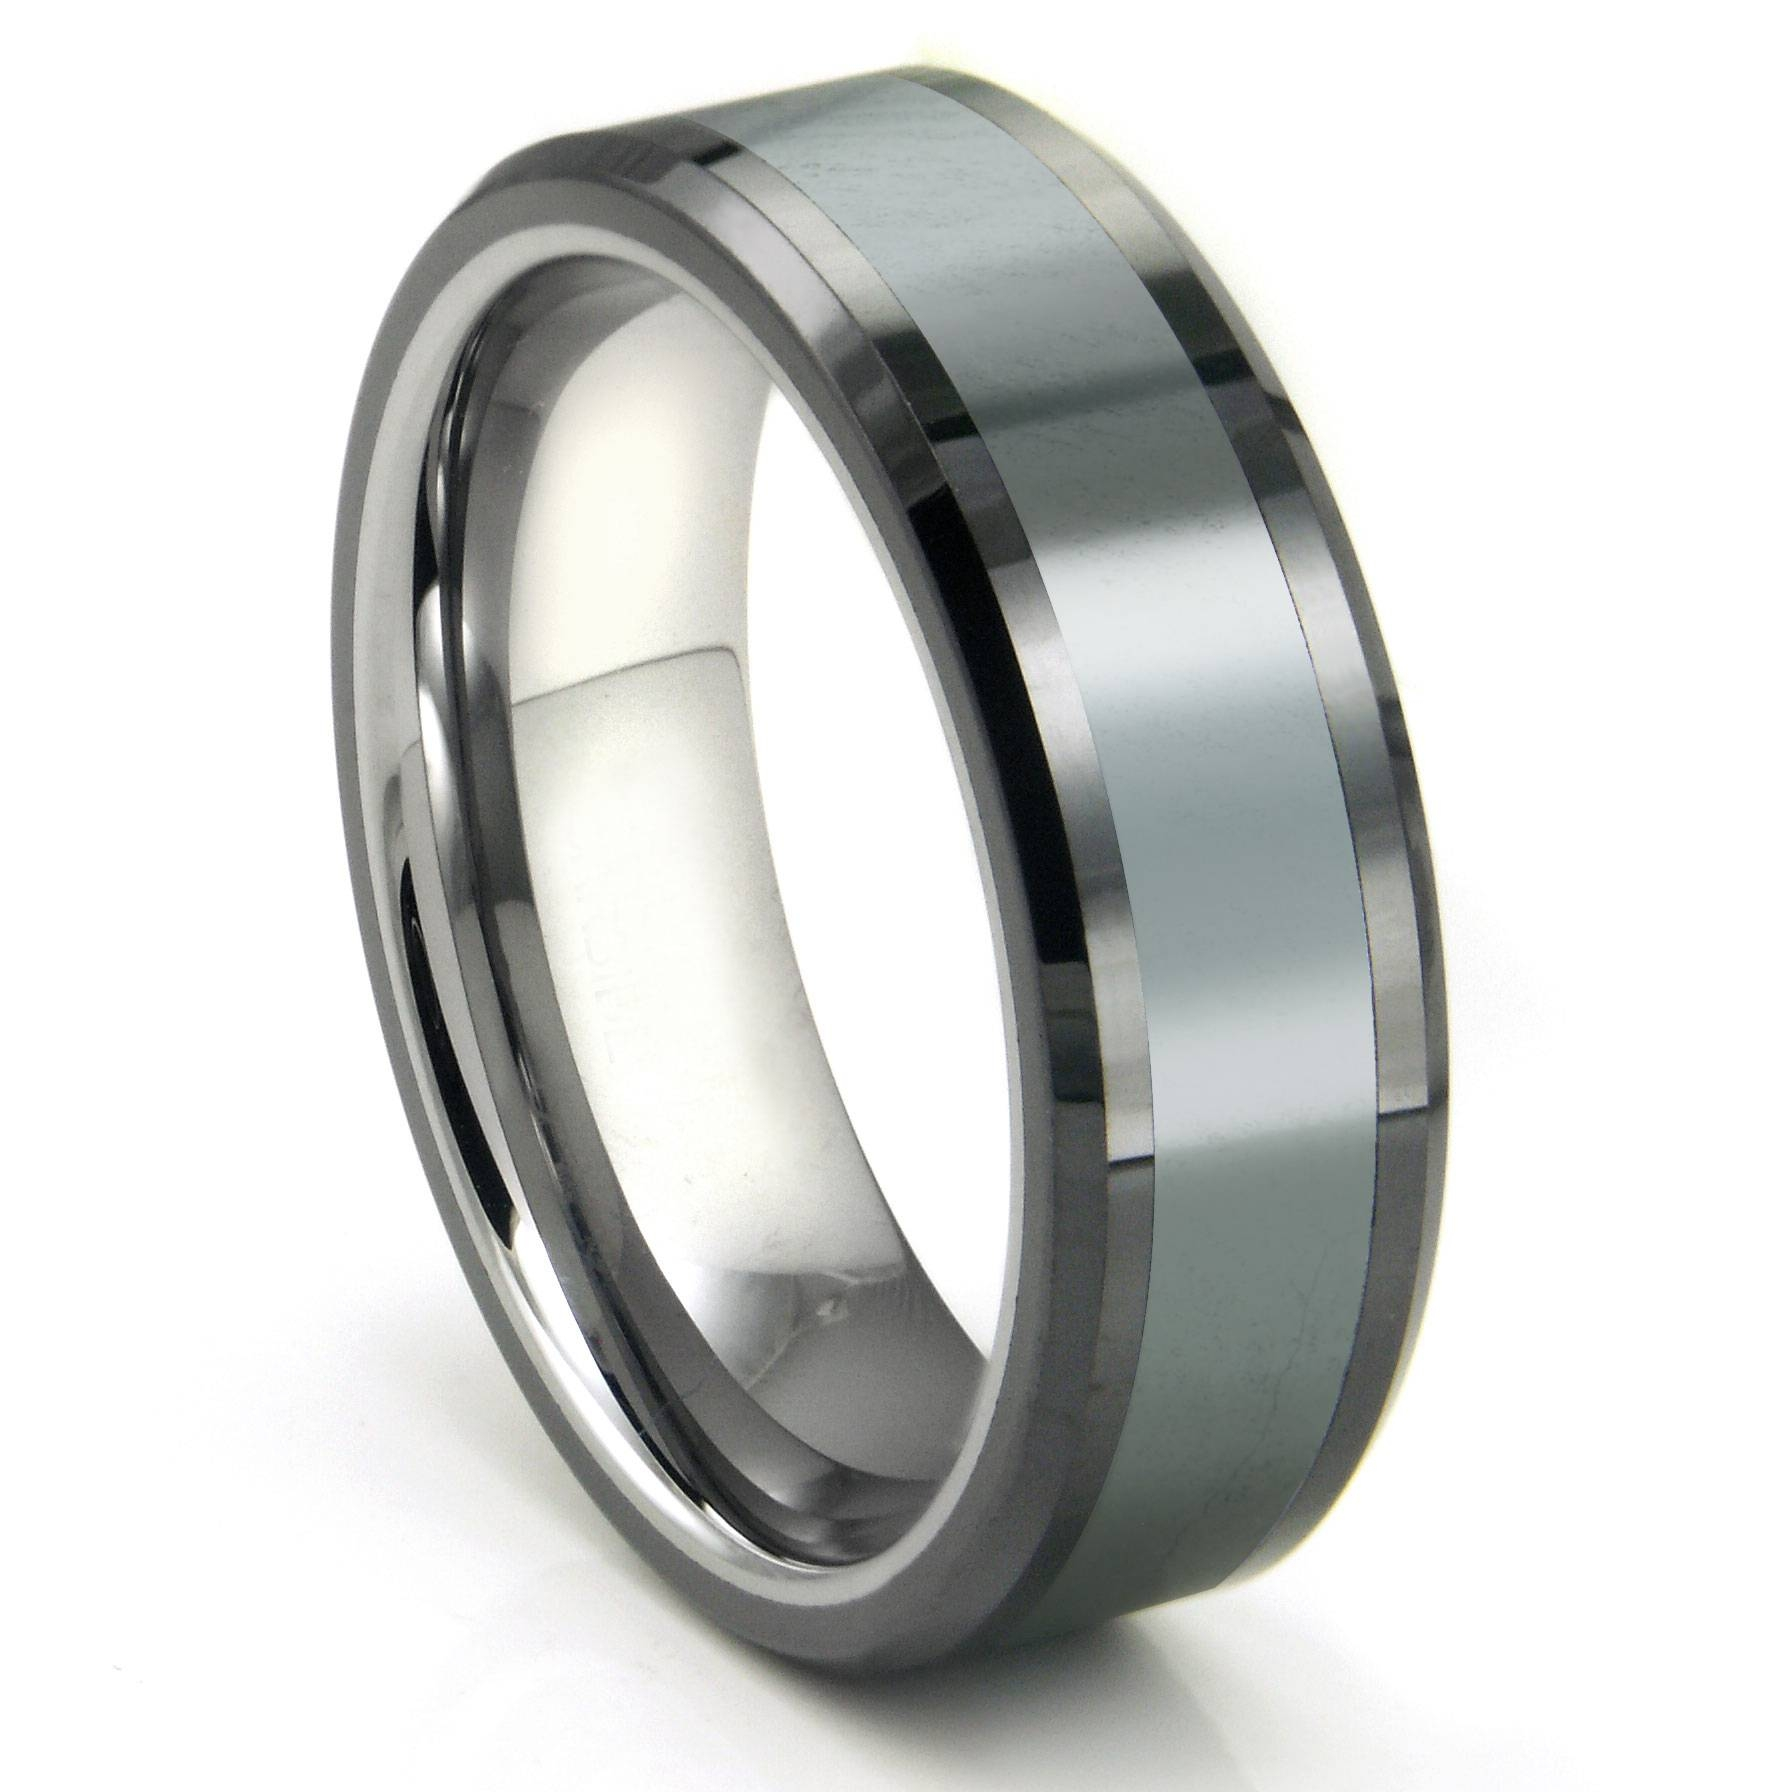 Mens Tungsten Rings & Wedding Bands – Titanium Kay With Regard To Tungsten Wedding Bands (Gallery 166 of 339)